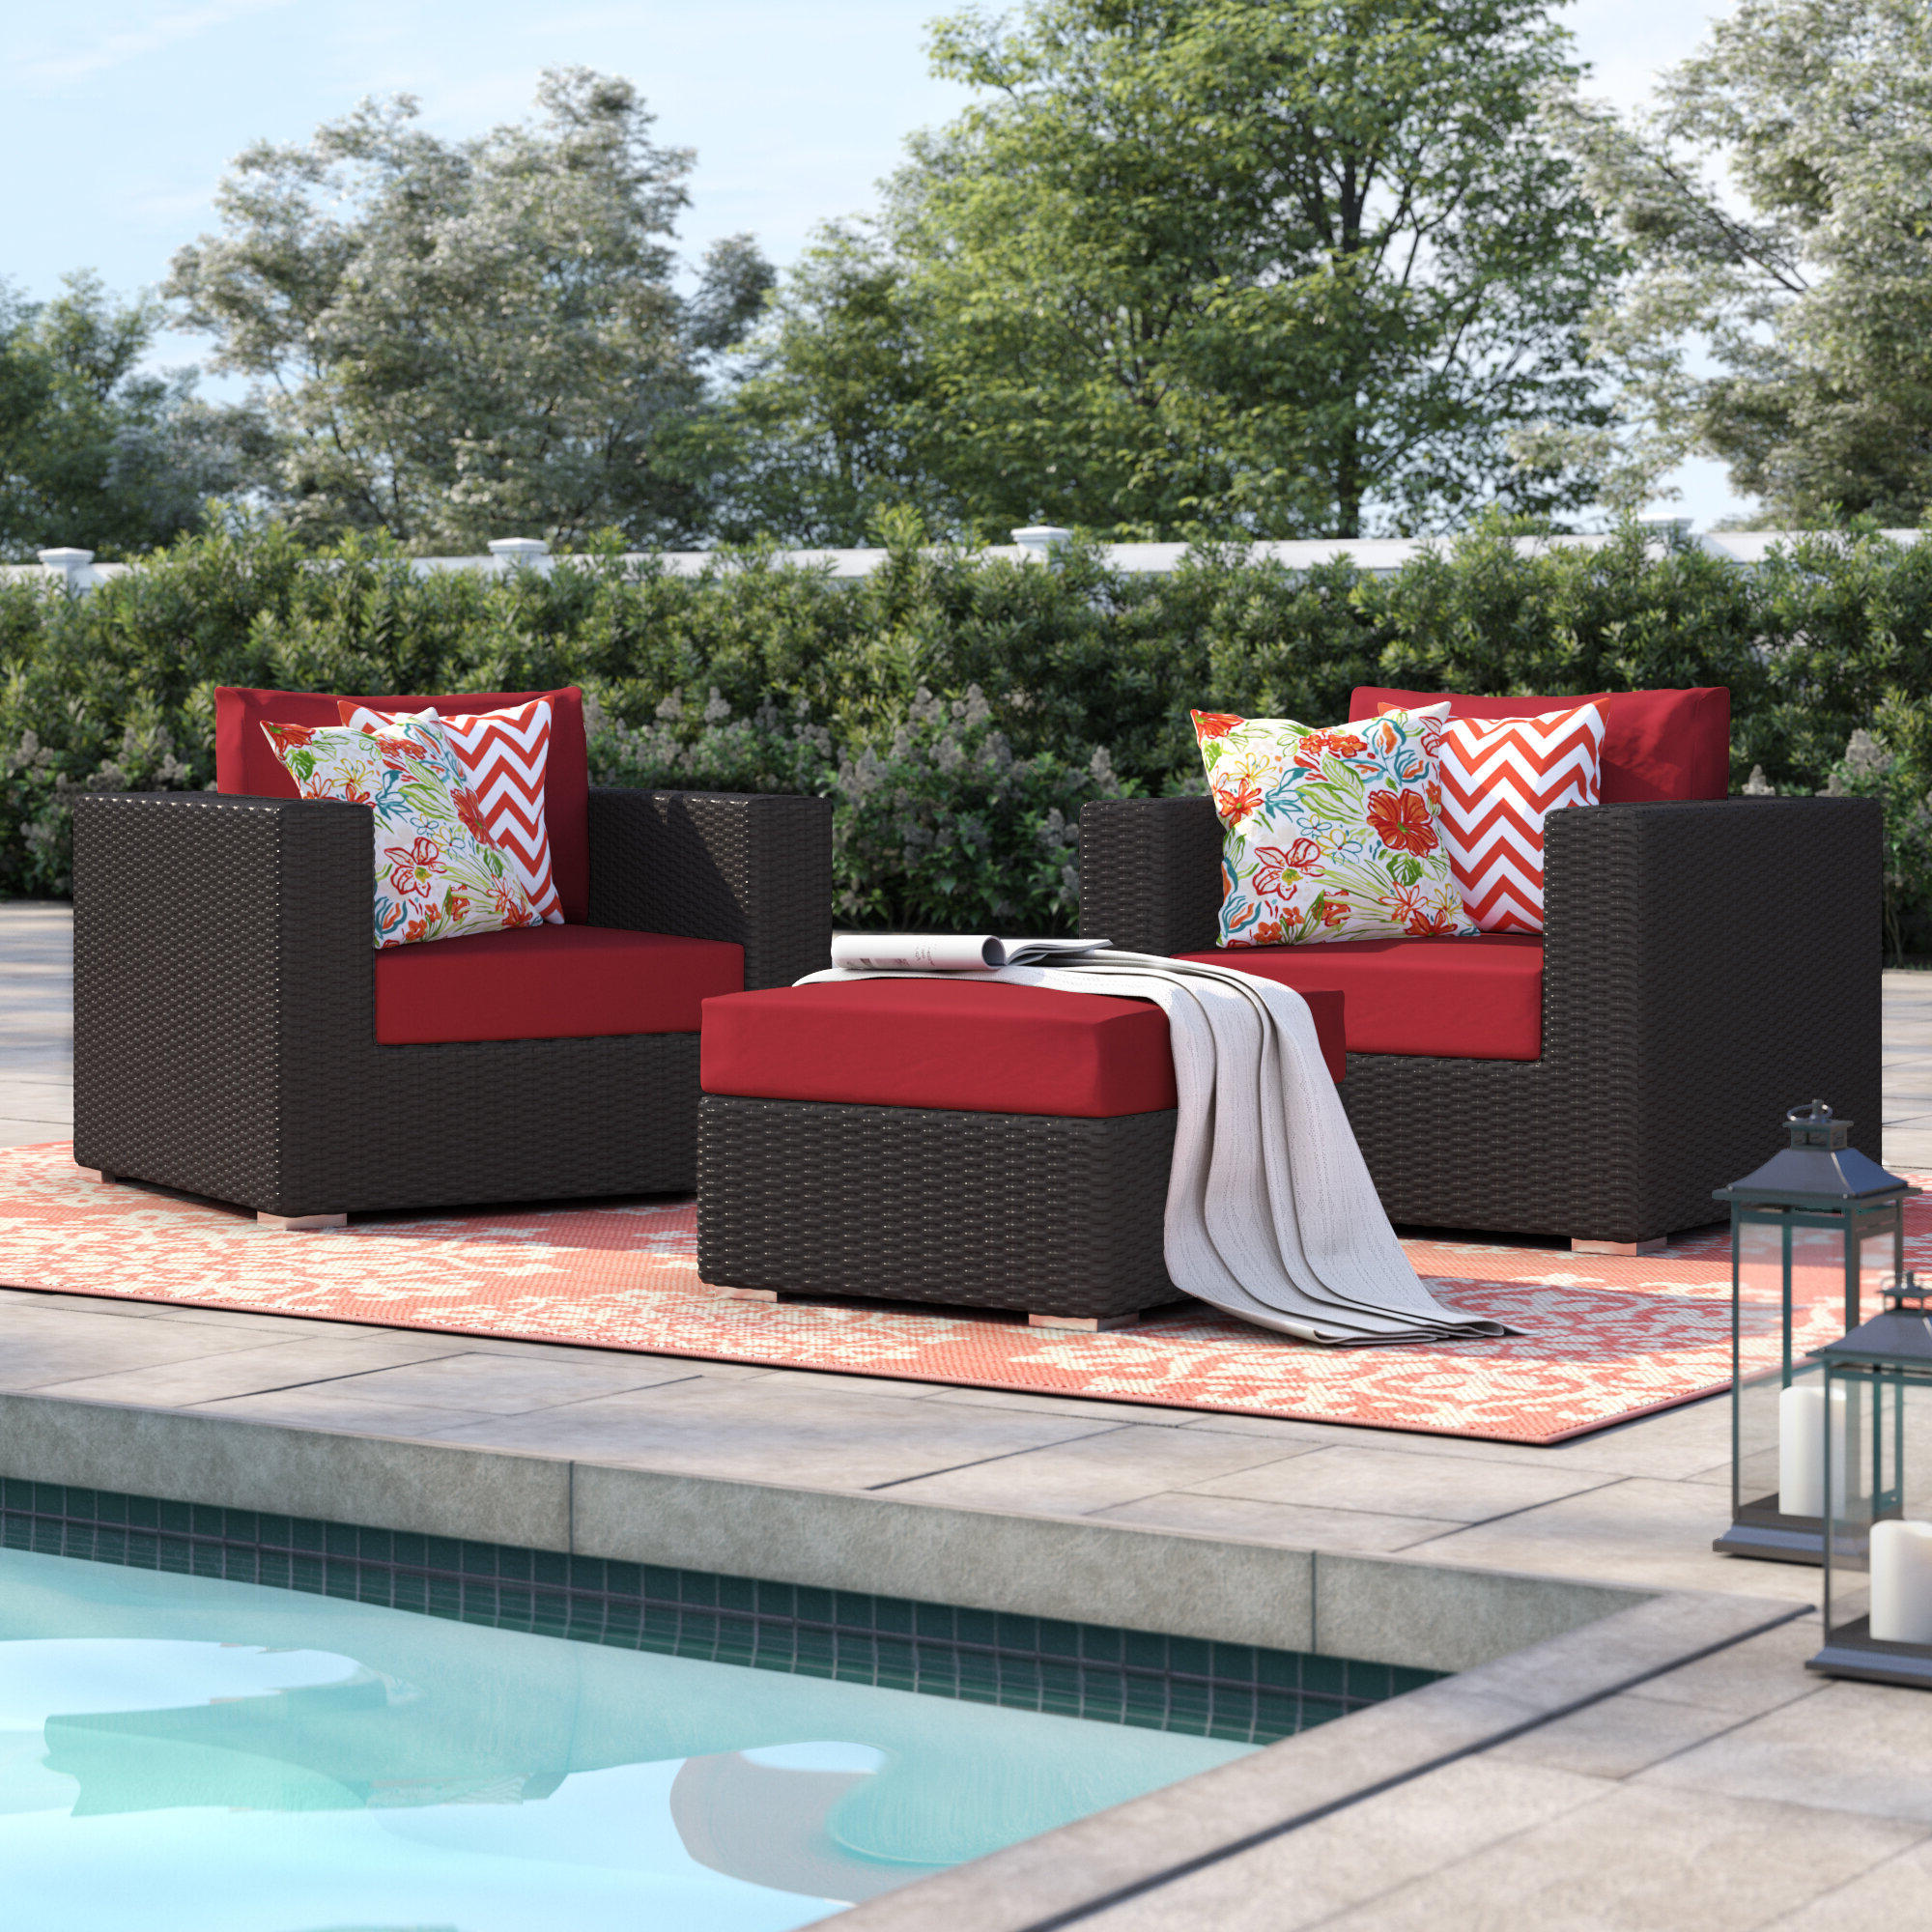 Most Current Brentwood 3 Piece Rattan Conversation Set With Cushions Throughout Brentwood Patio Sofas With Cushions (View 18 of 18)